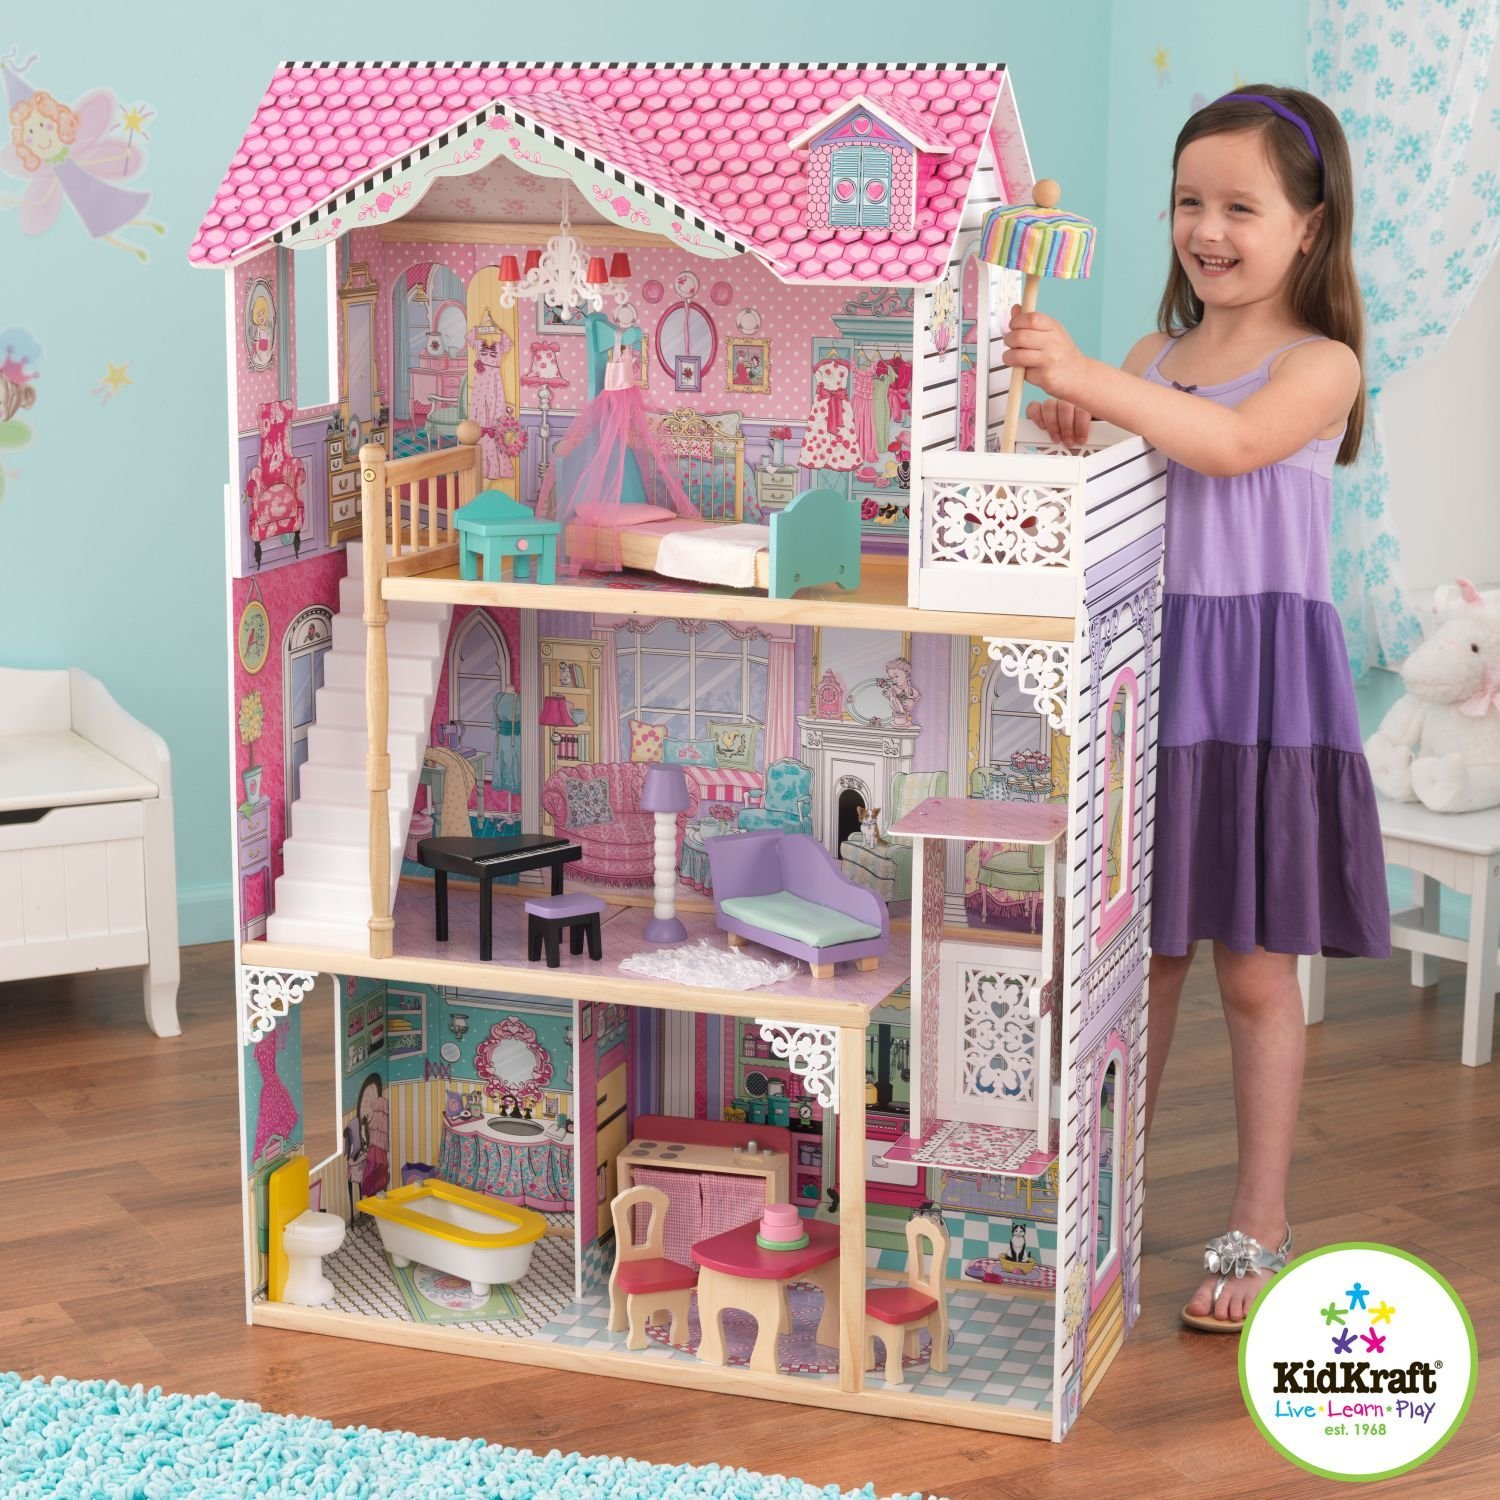 Amazing Kidkraft Dollhouse Made Of Wood With Triple Tier Design With Pink Roof On Wooden Floor Which Matched With Blue Wallpaper For Nursery Decor Ideas